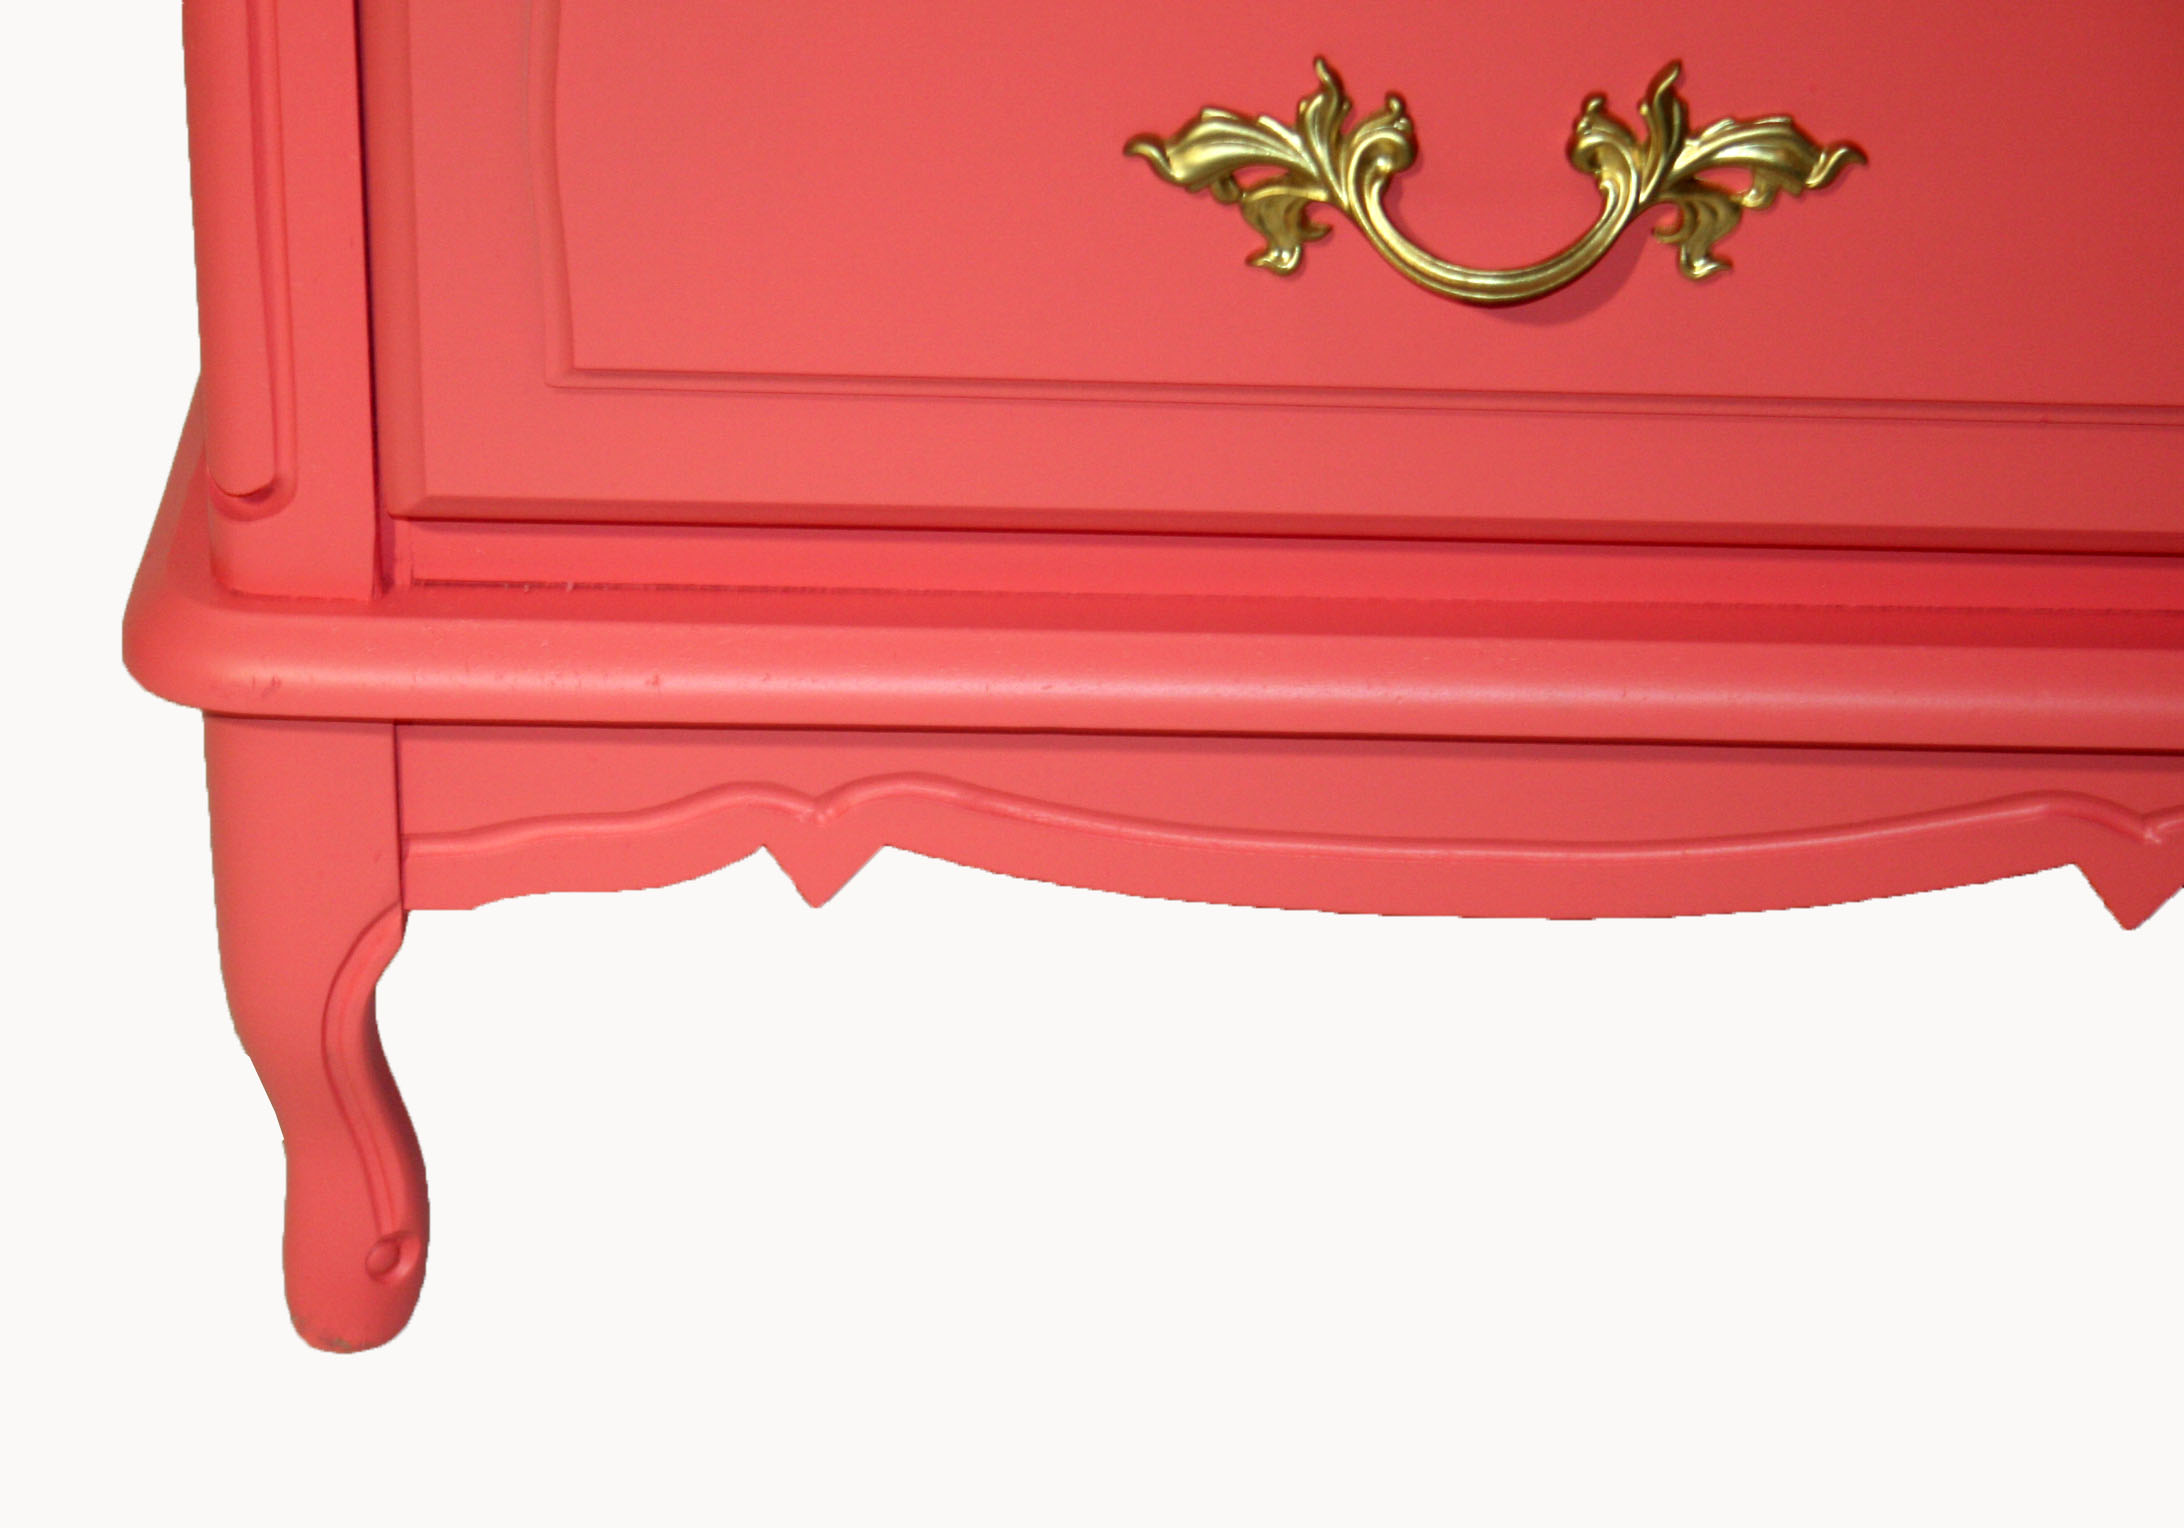 Vintage French Provincial Coral Nightstands - Pair | Chairish